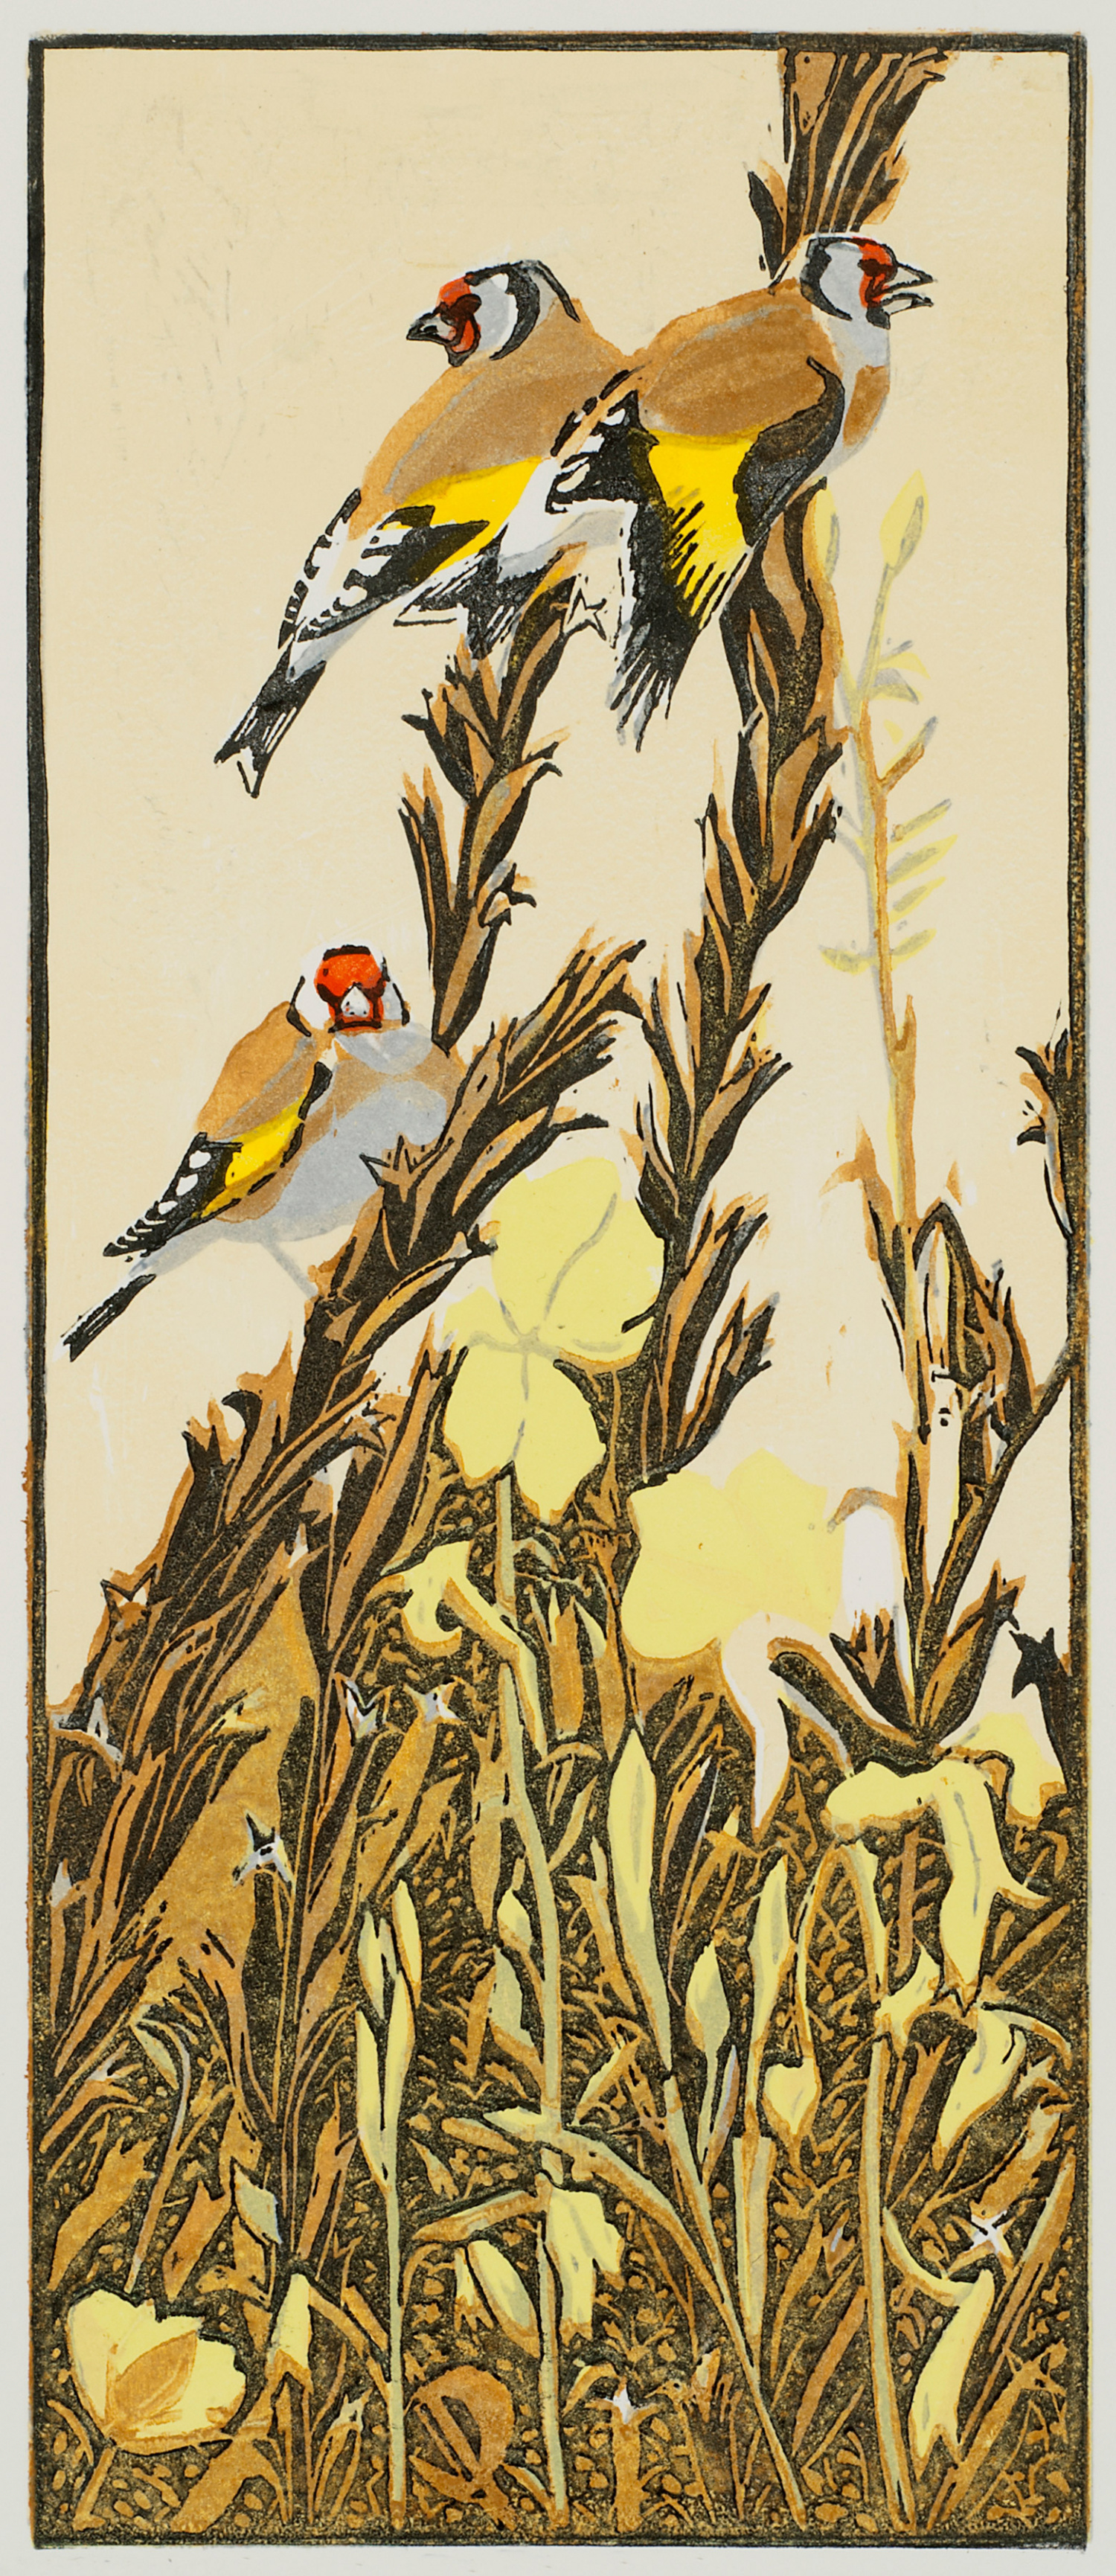 Goldfinches & Evening Primroses by Robert Greenhalf